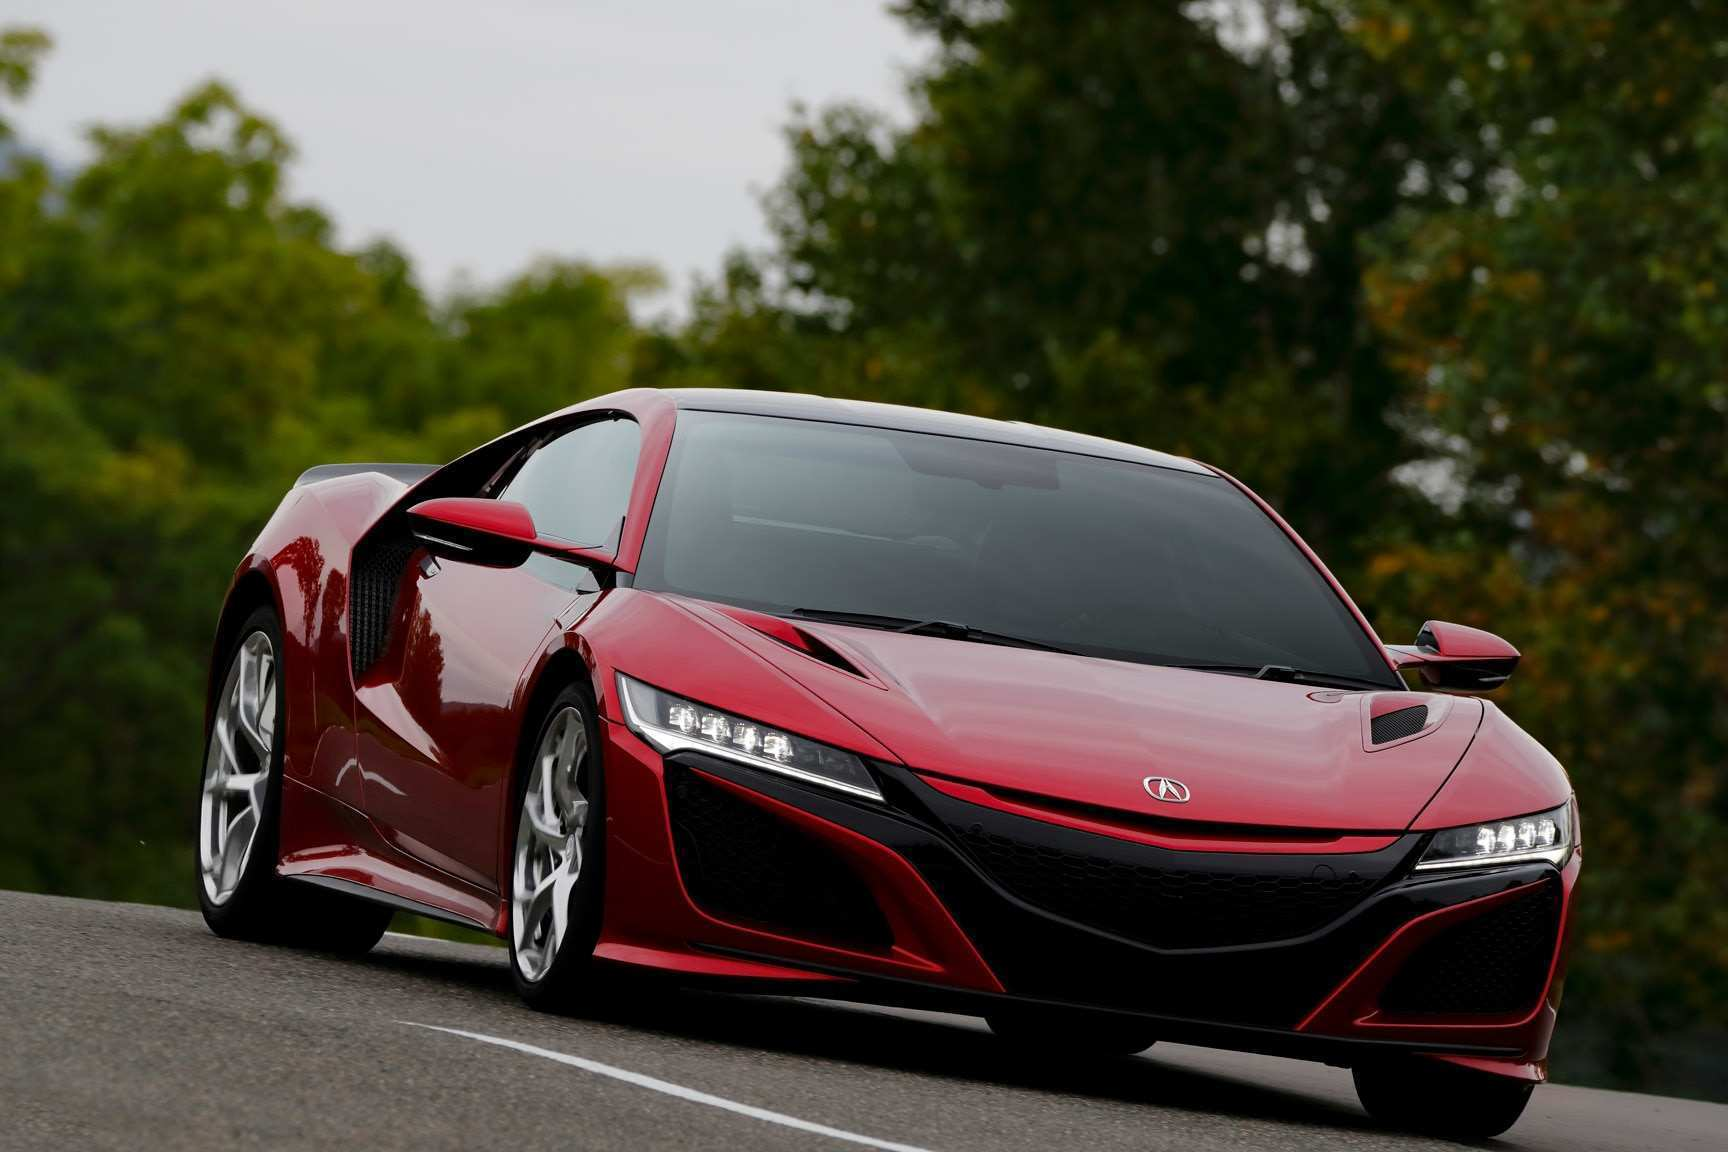 78 New 2019 Acura Nsx Model with 2019 Acura Nsx